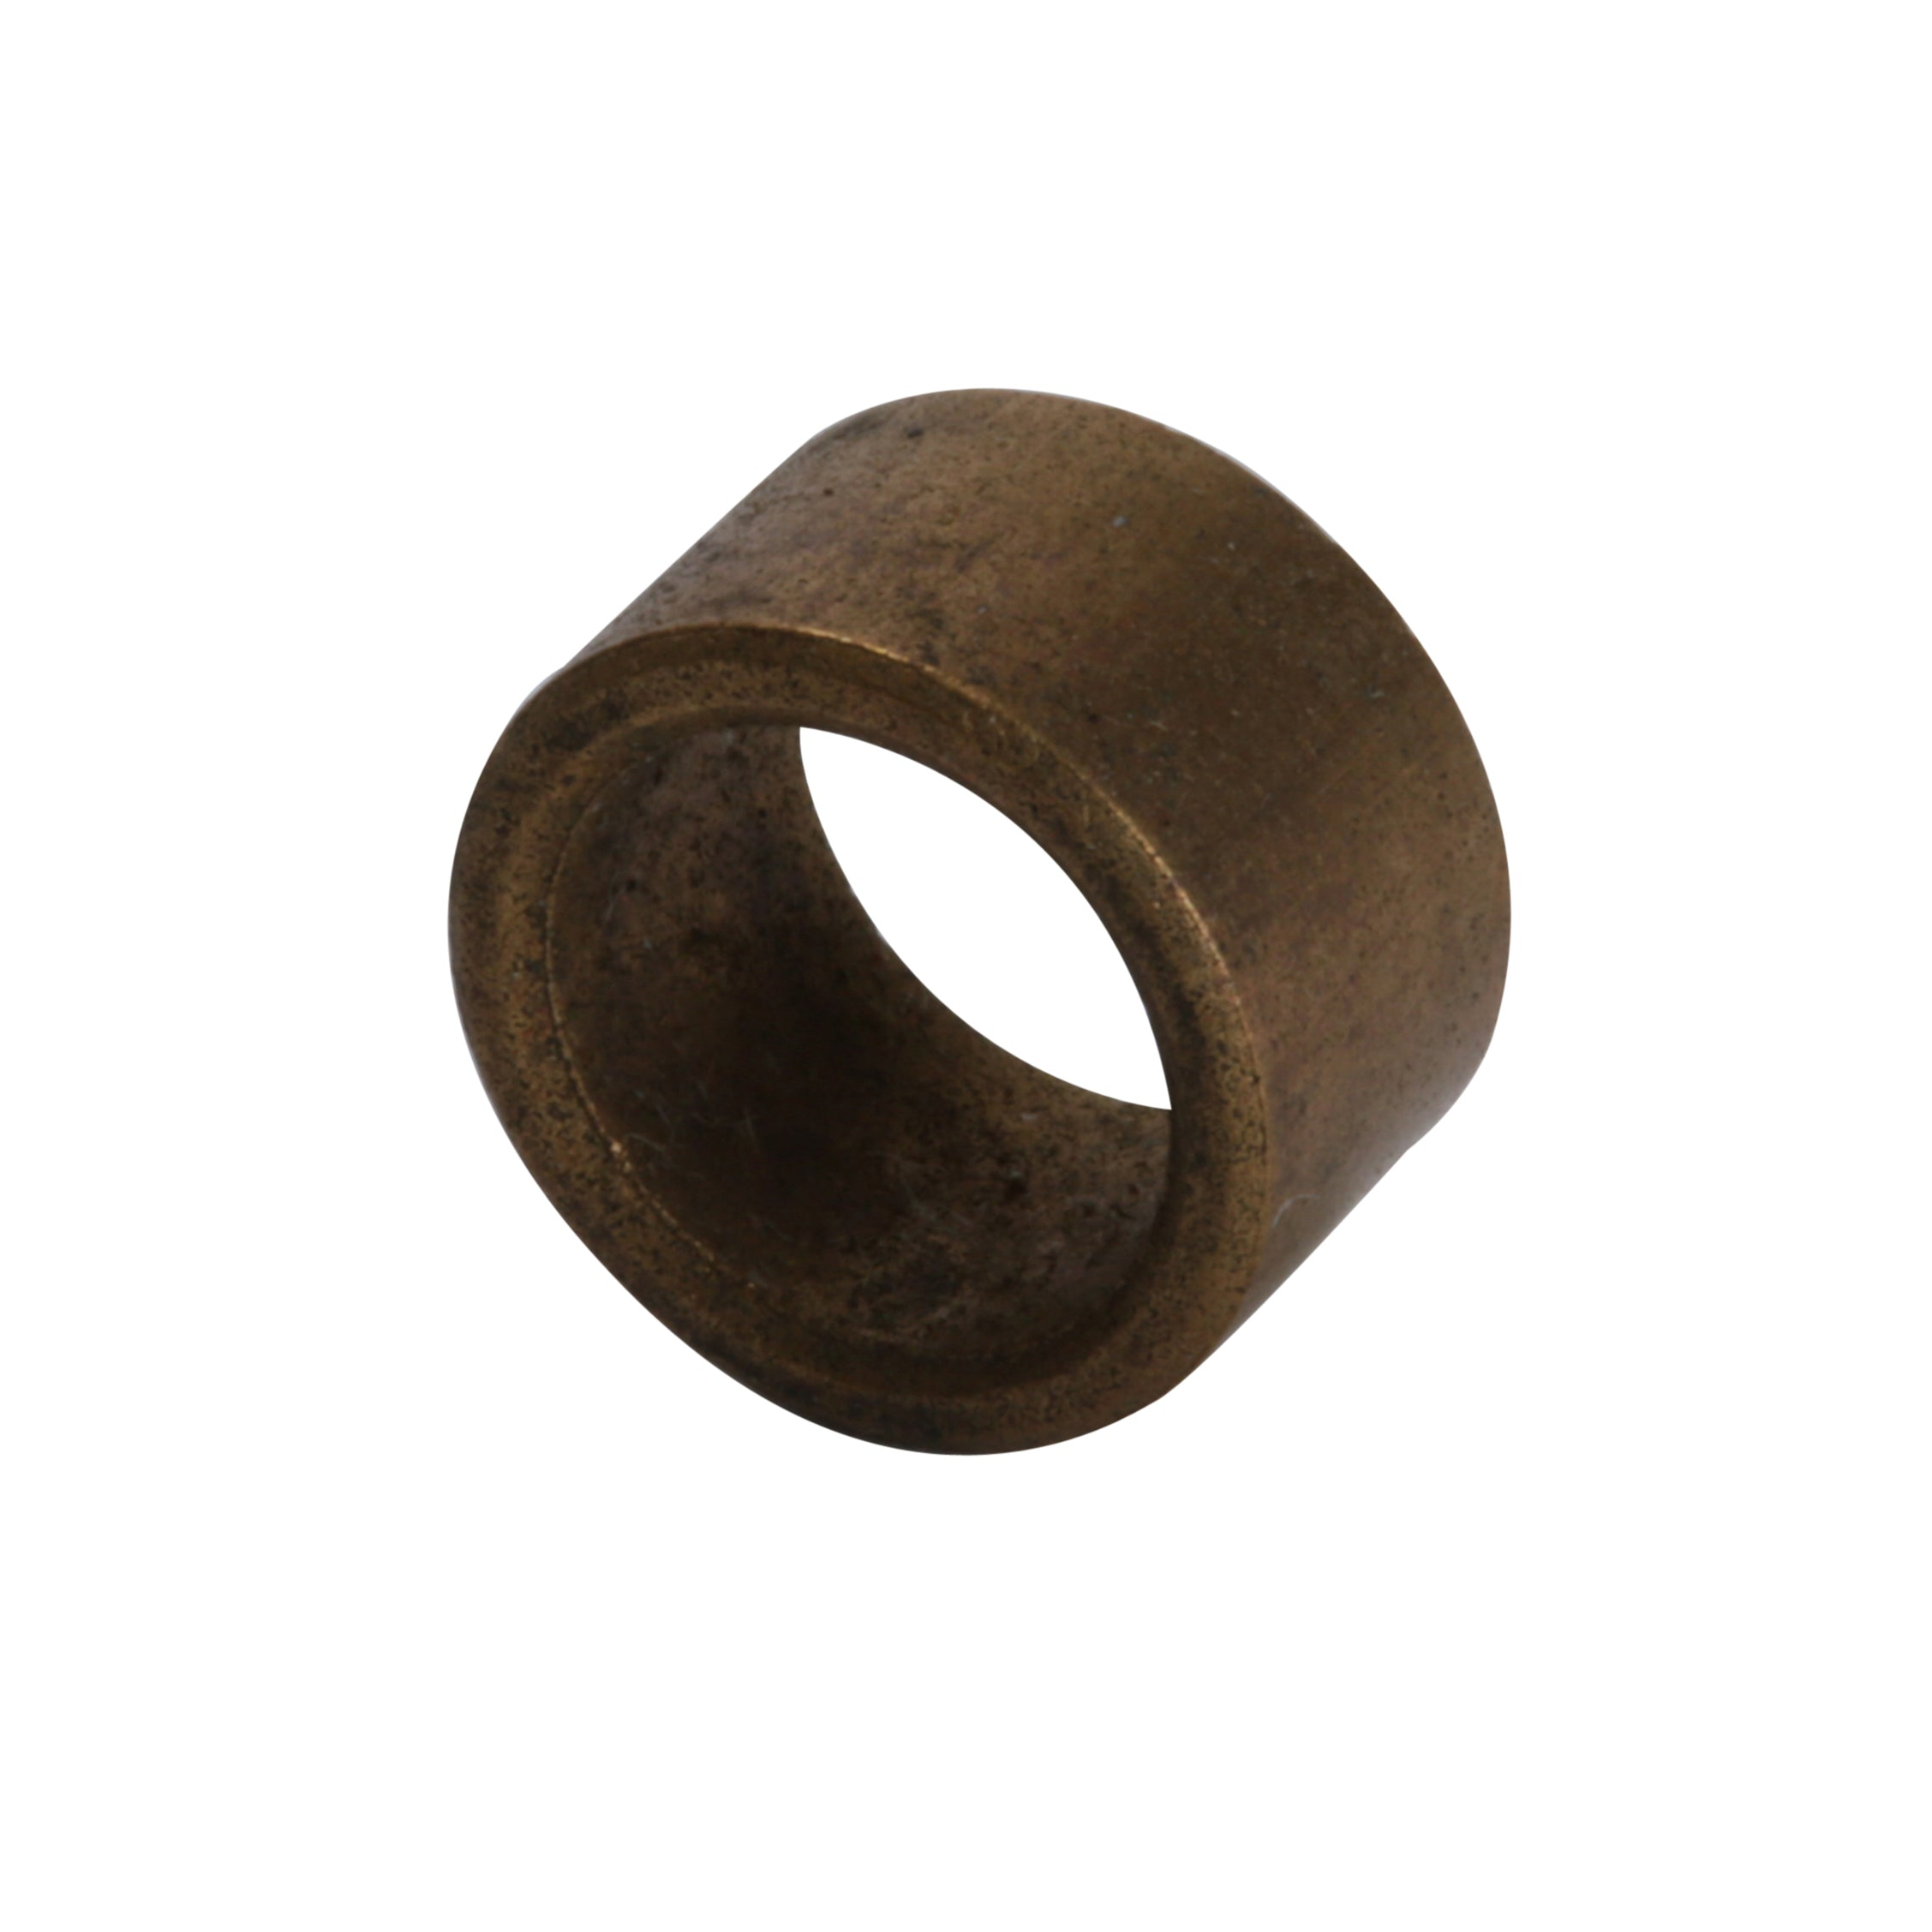 Distributor Point Plate Bushing • 1942-48 V-8 & 6 Cylinder